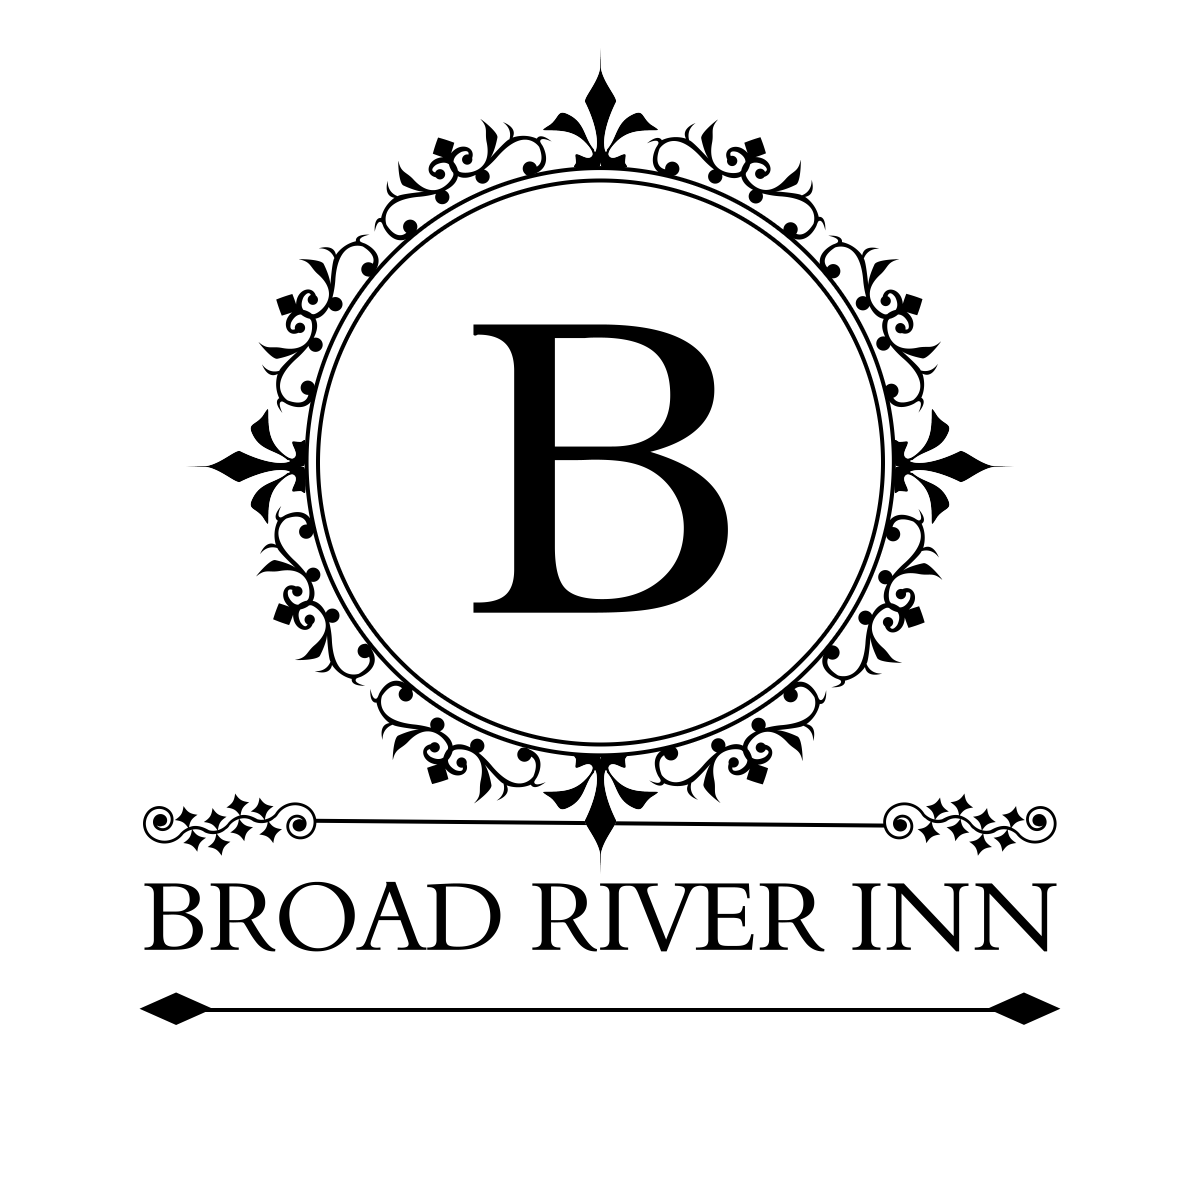 logo of broad river inn